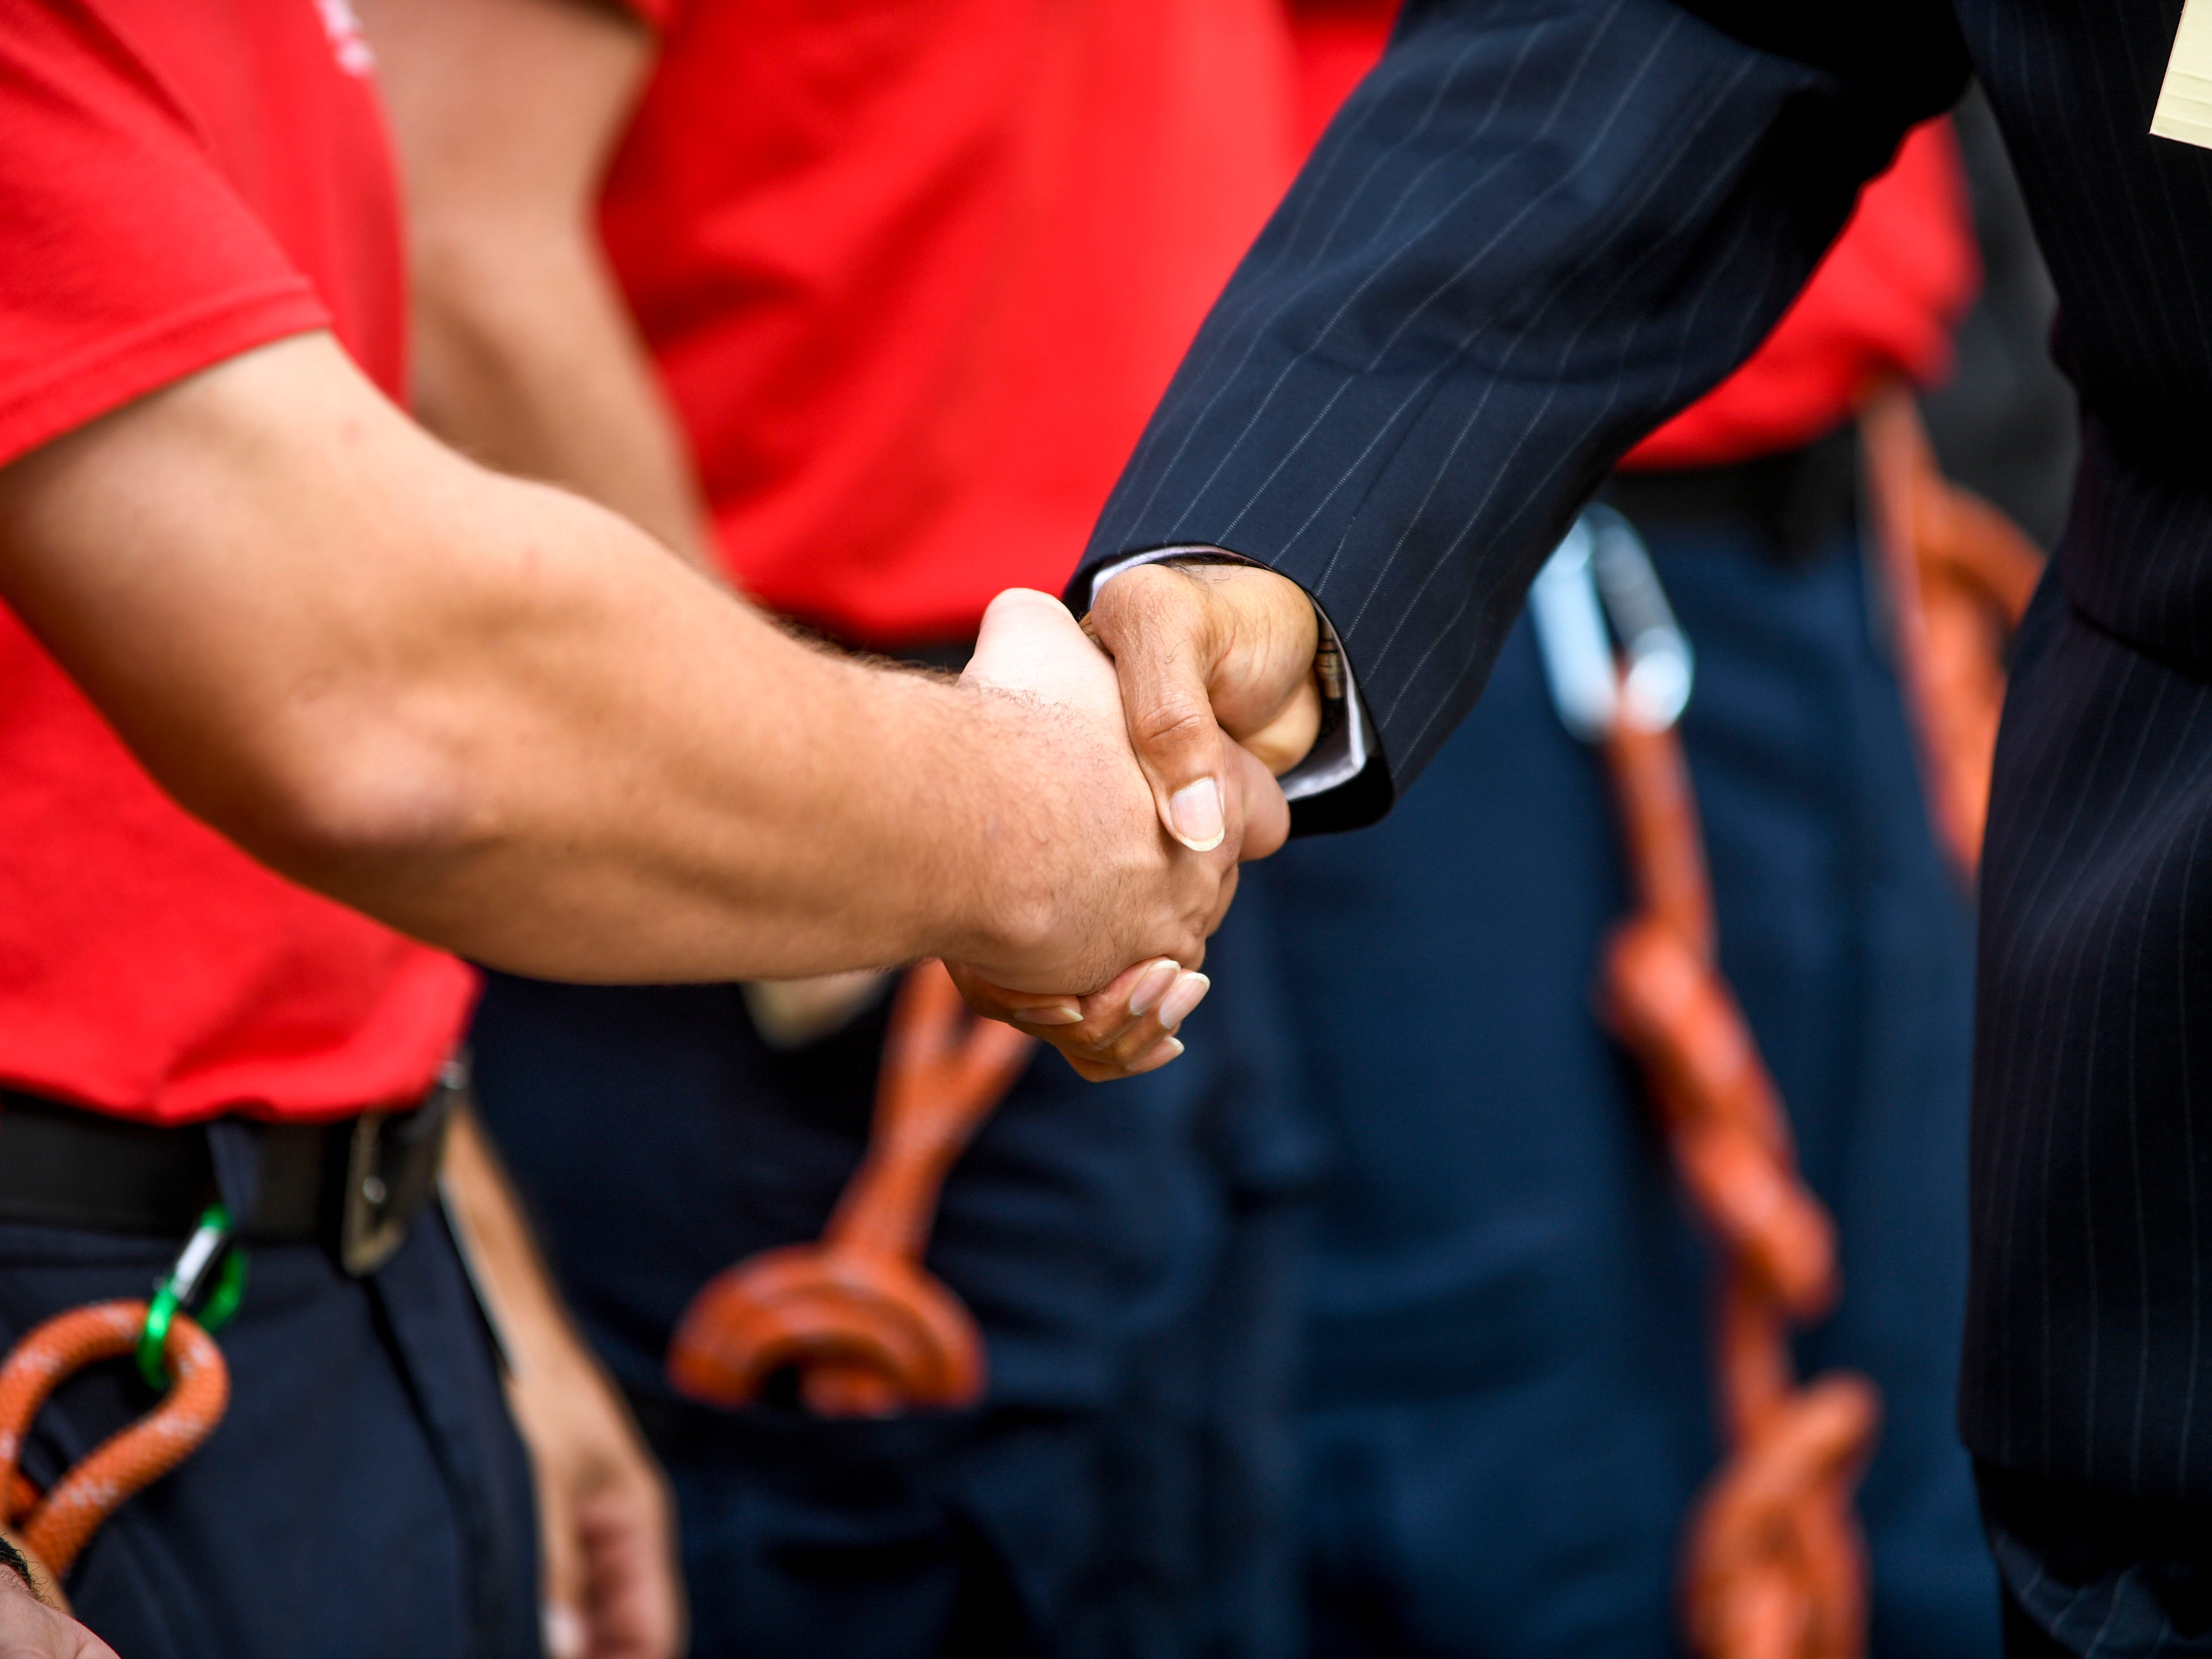 Fire chief Darryl Samuels shakes the hands of new fire department recruits after a ceremony honoring the victims of the 9/11 attacks at Fire Station 3 in Jackson, Tenn., on Tuesday, Sept. 11, 2018.